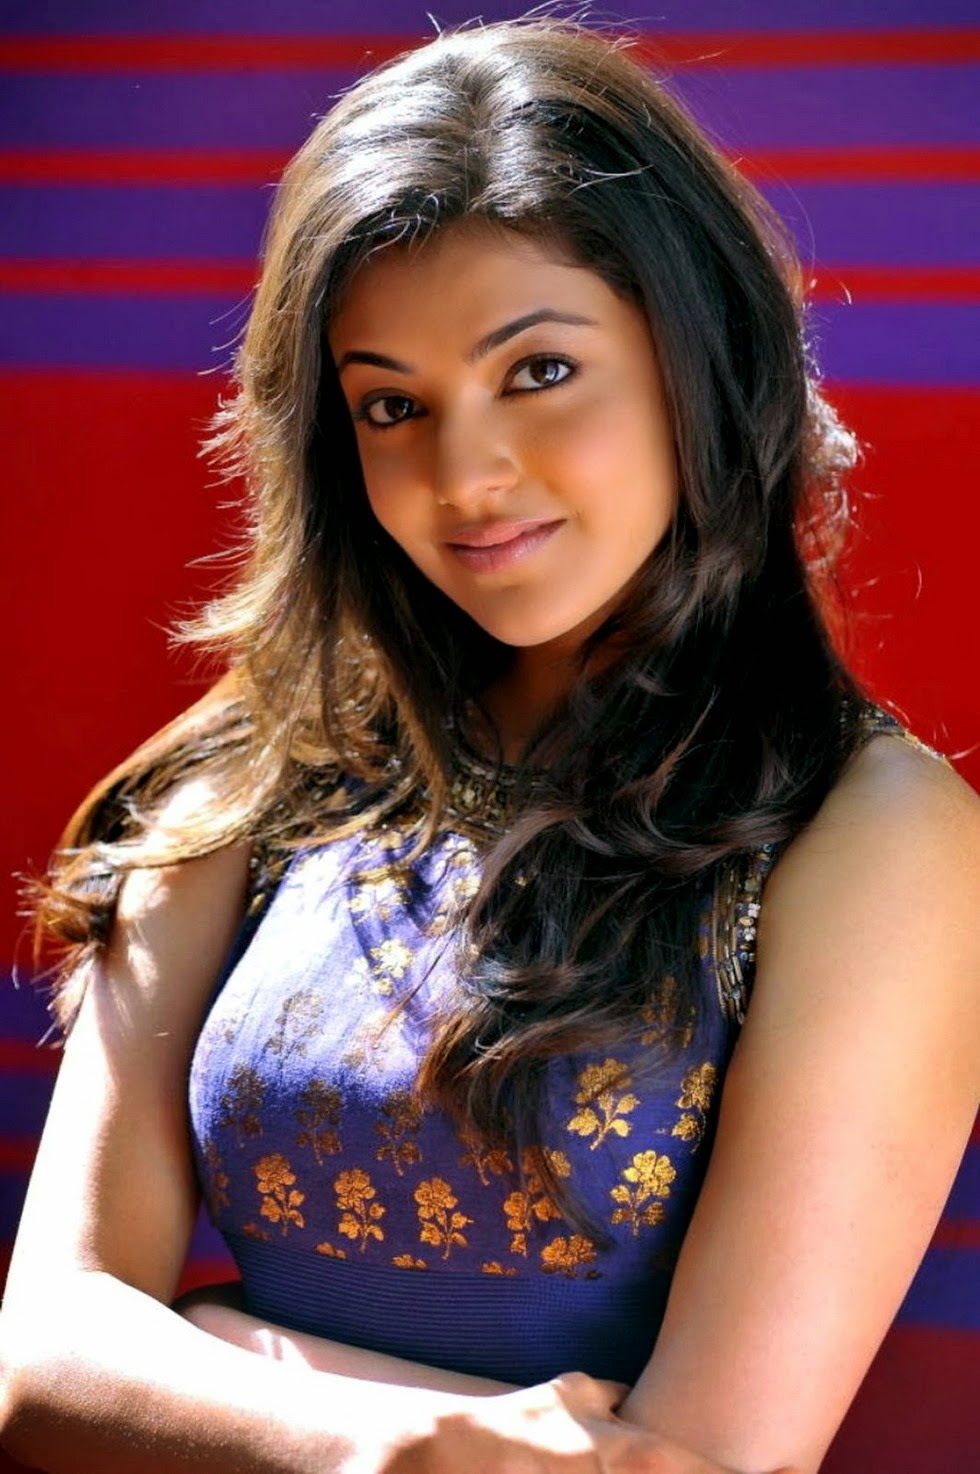 Wallpaper download kajal agarwal - Wallpaper Download Kajal Agarwal 18